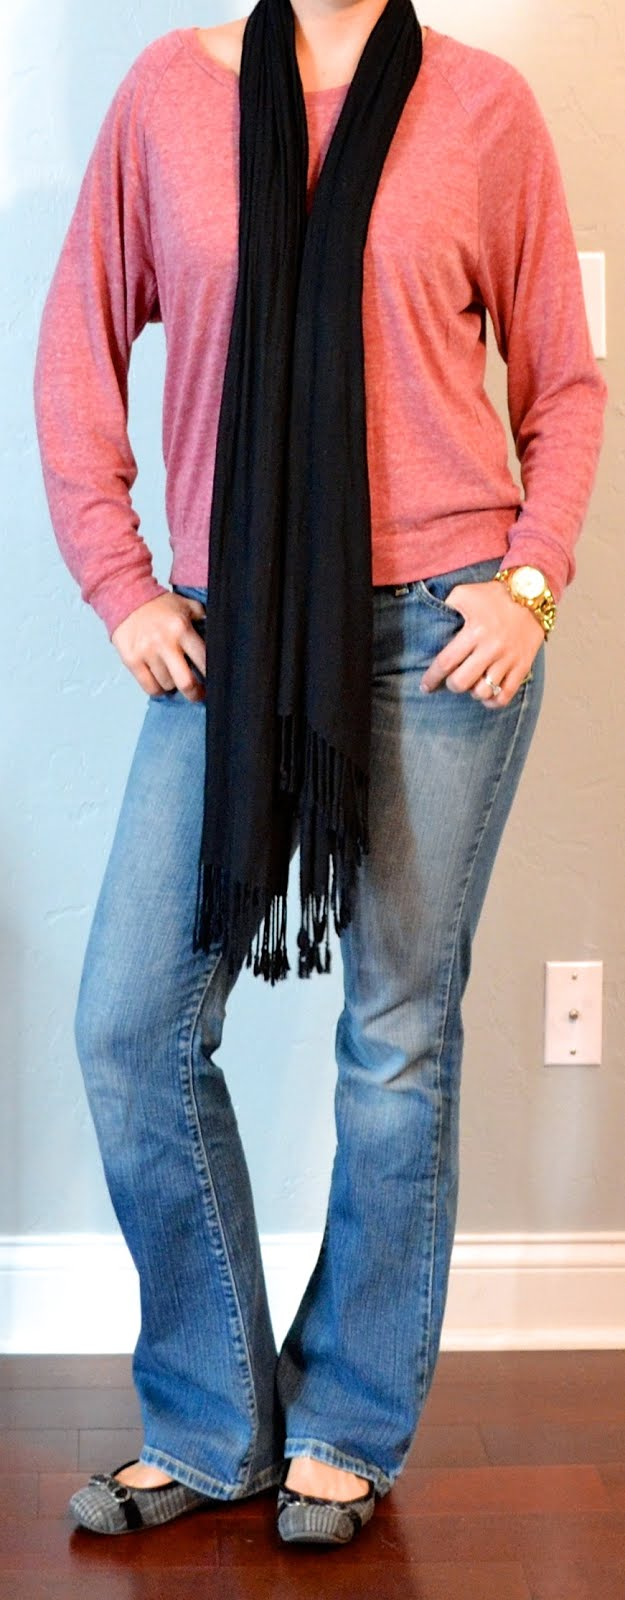 Outfit post pink slouchy sweater bootcut jeans black scarf | Outfit Posts